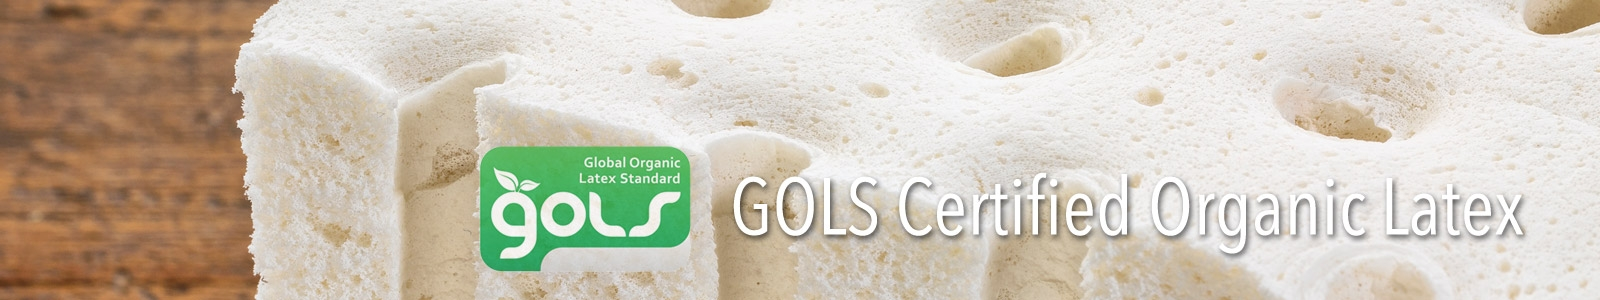 GOLS Certified Organic Latex